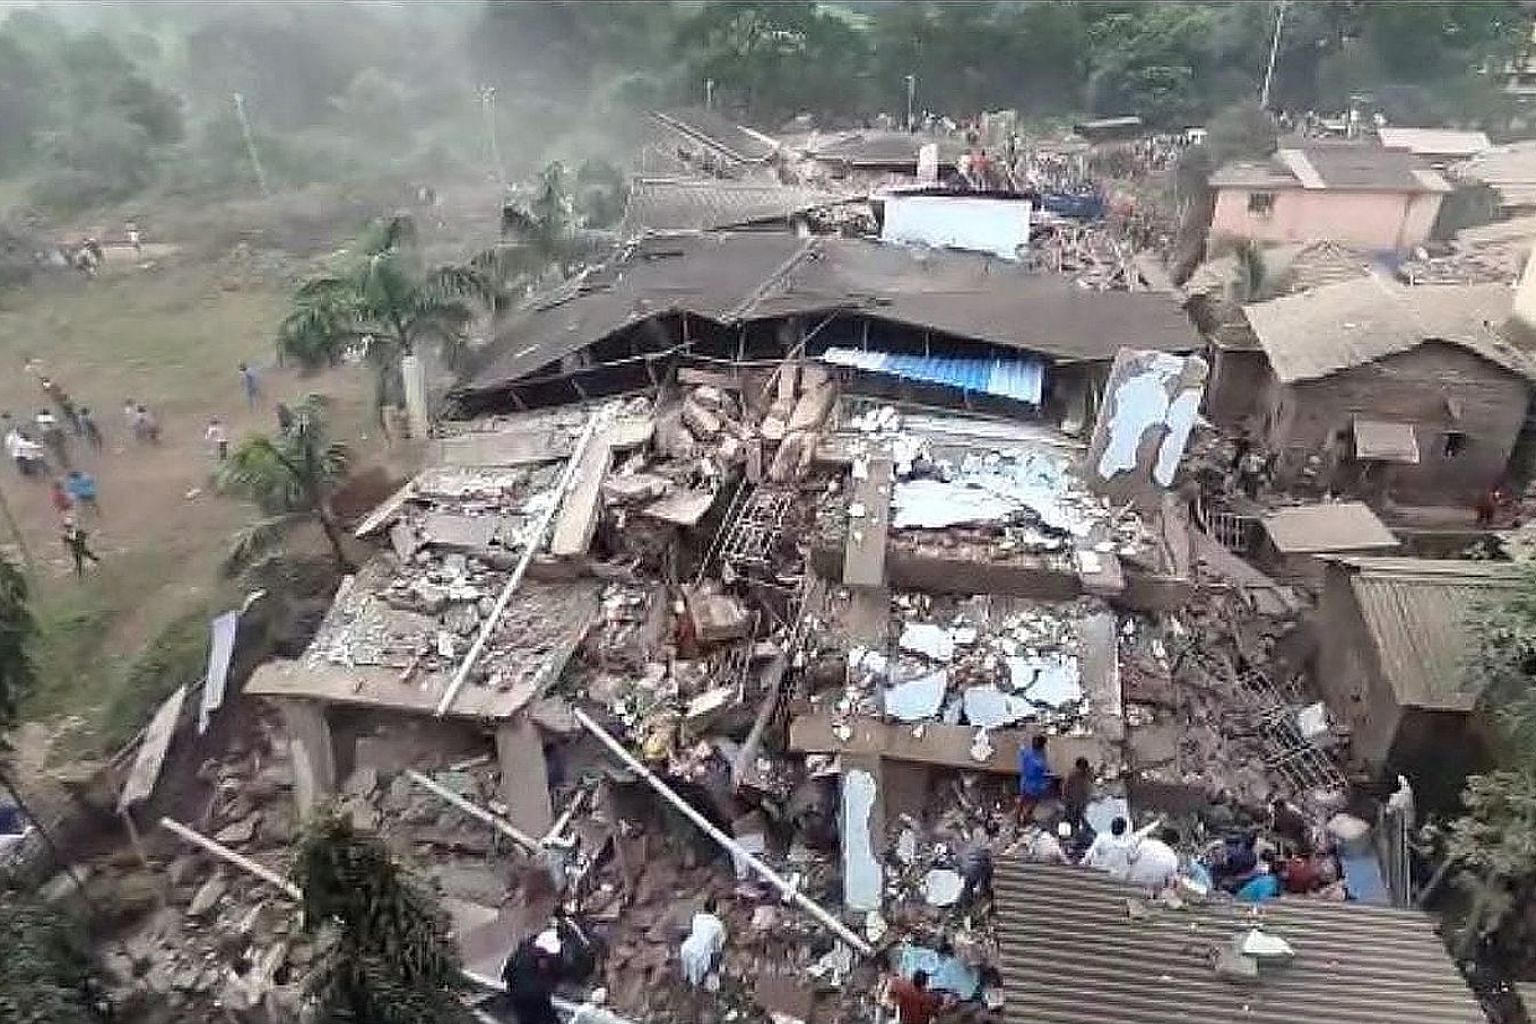 The five-storey building caved in yesterday. The authorities said 28 people were pulled out by rescue teams amid heavy monsoon rain. The number of dead is yet to be ascertained.